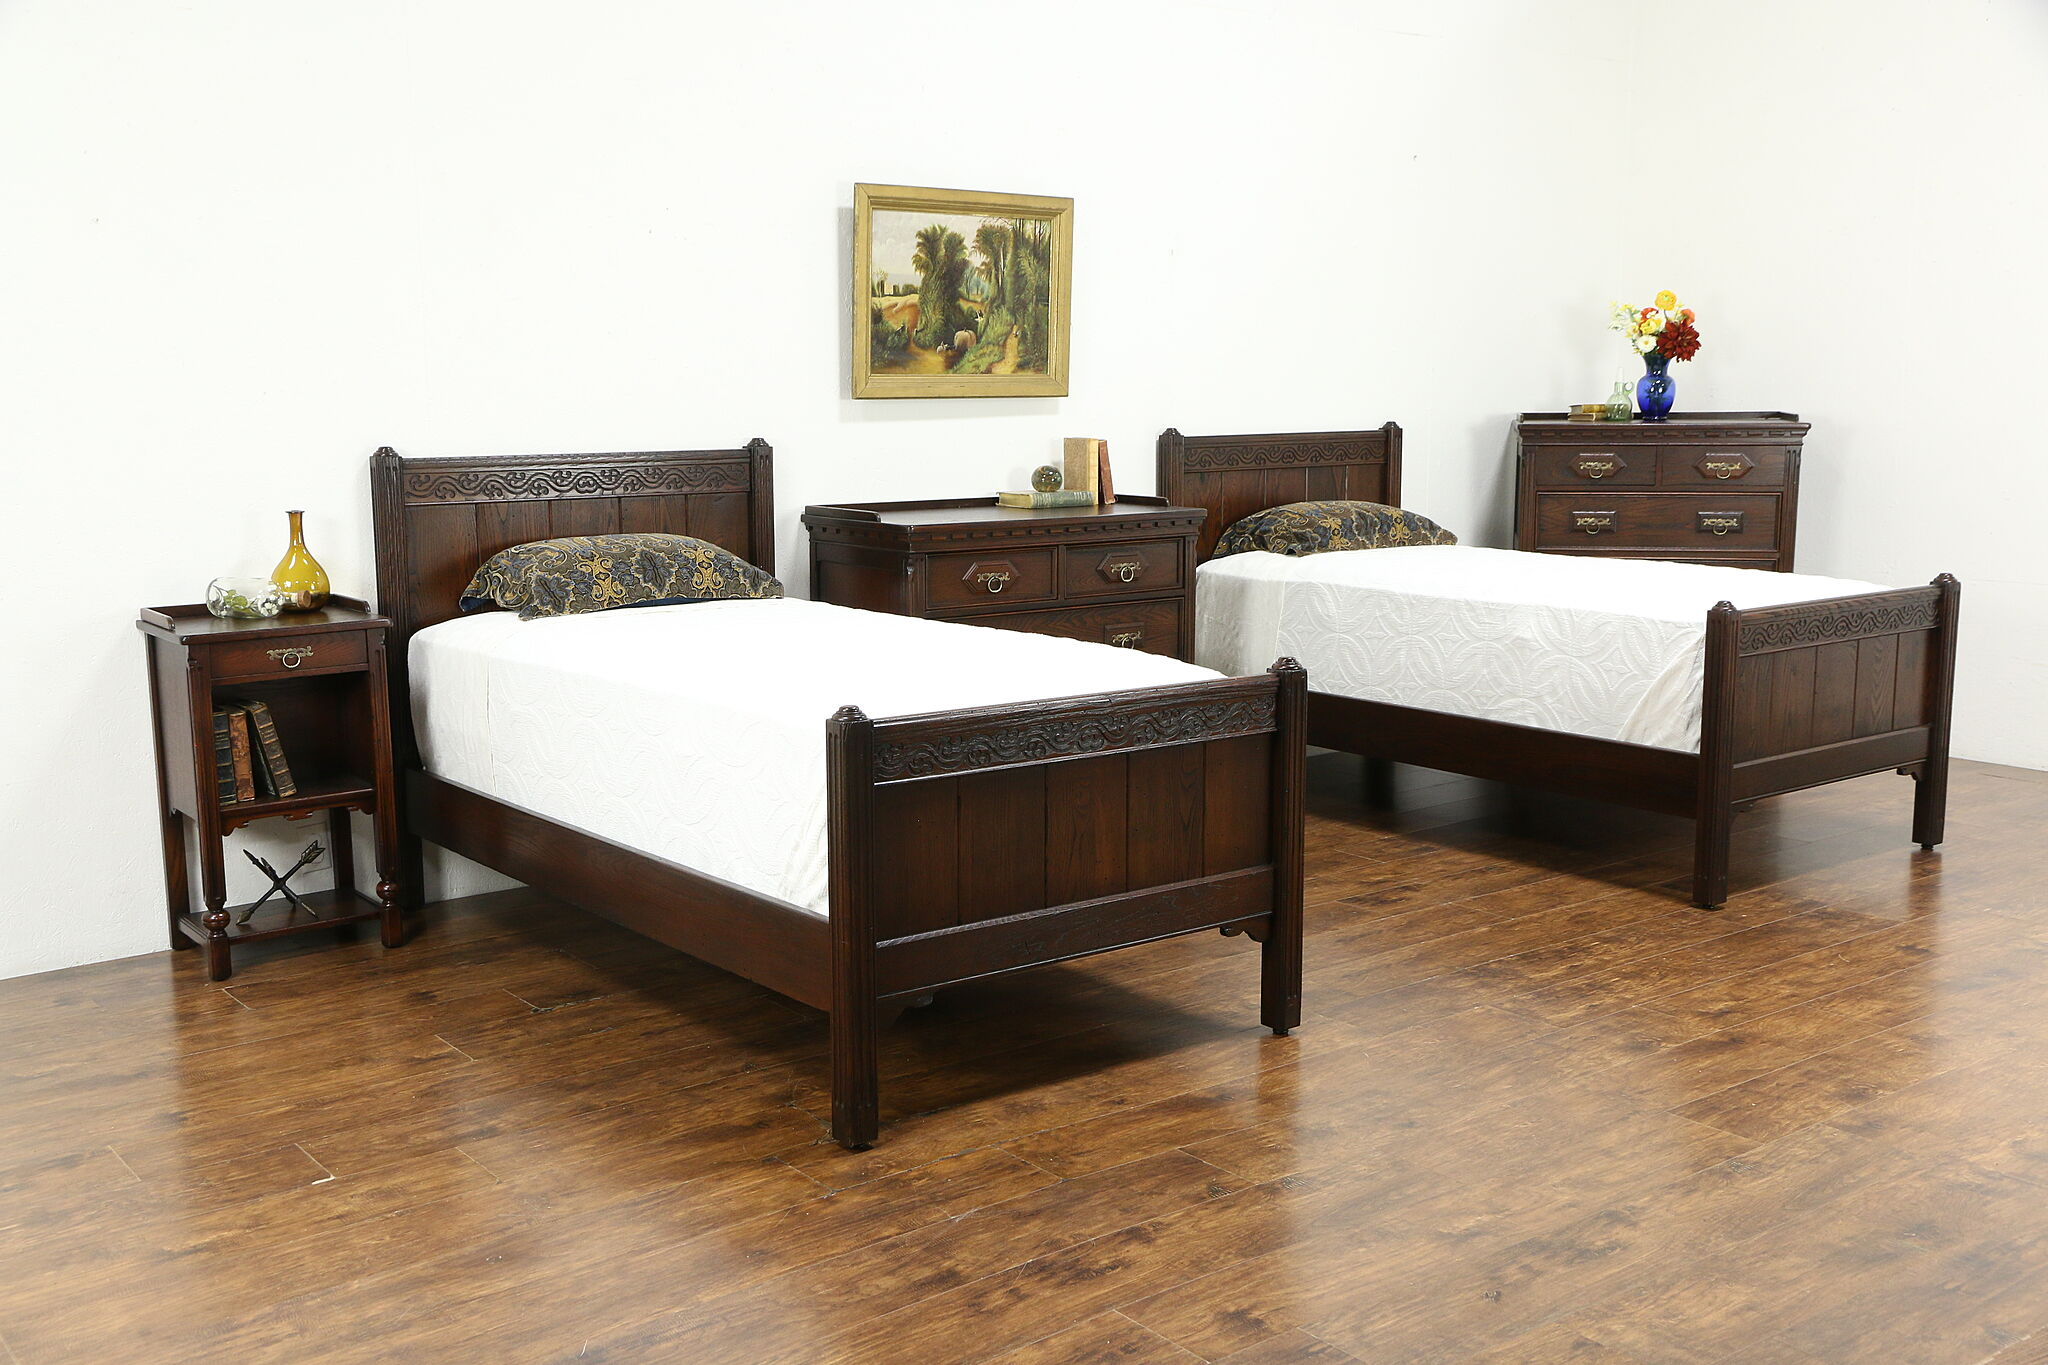 Oak Antique Tudor Bedroom Set 2 Chests Twin Beds Nightstand Imperial 34173 Harp Gallery Antiques Furniture